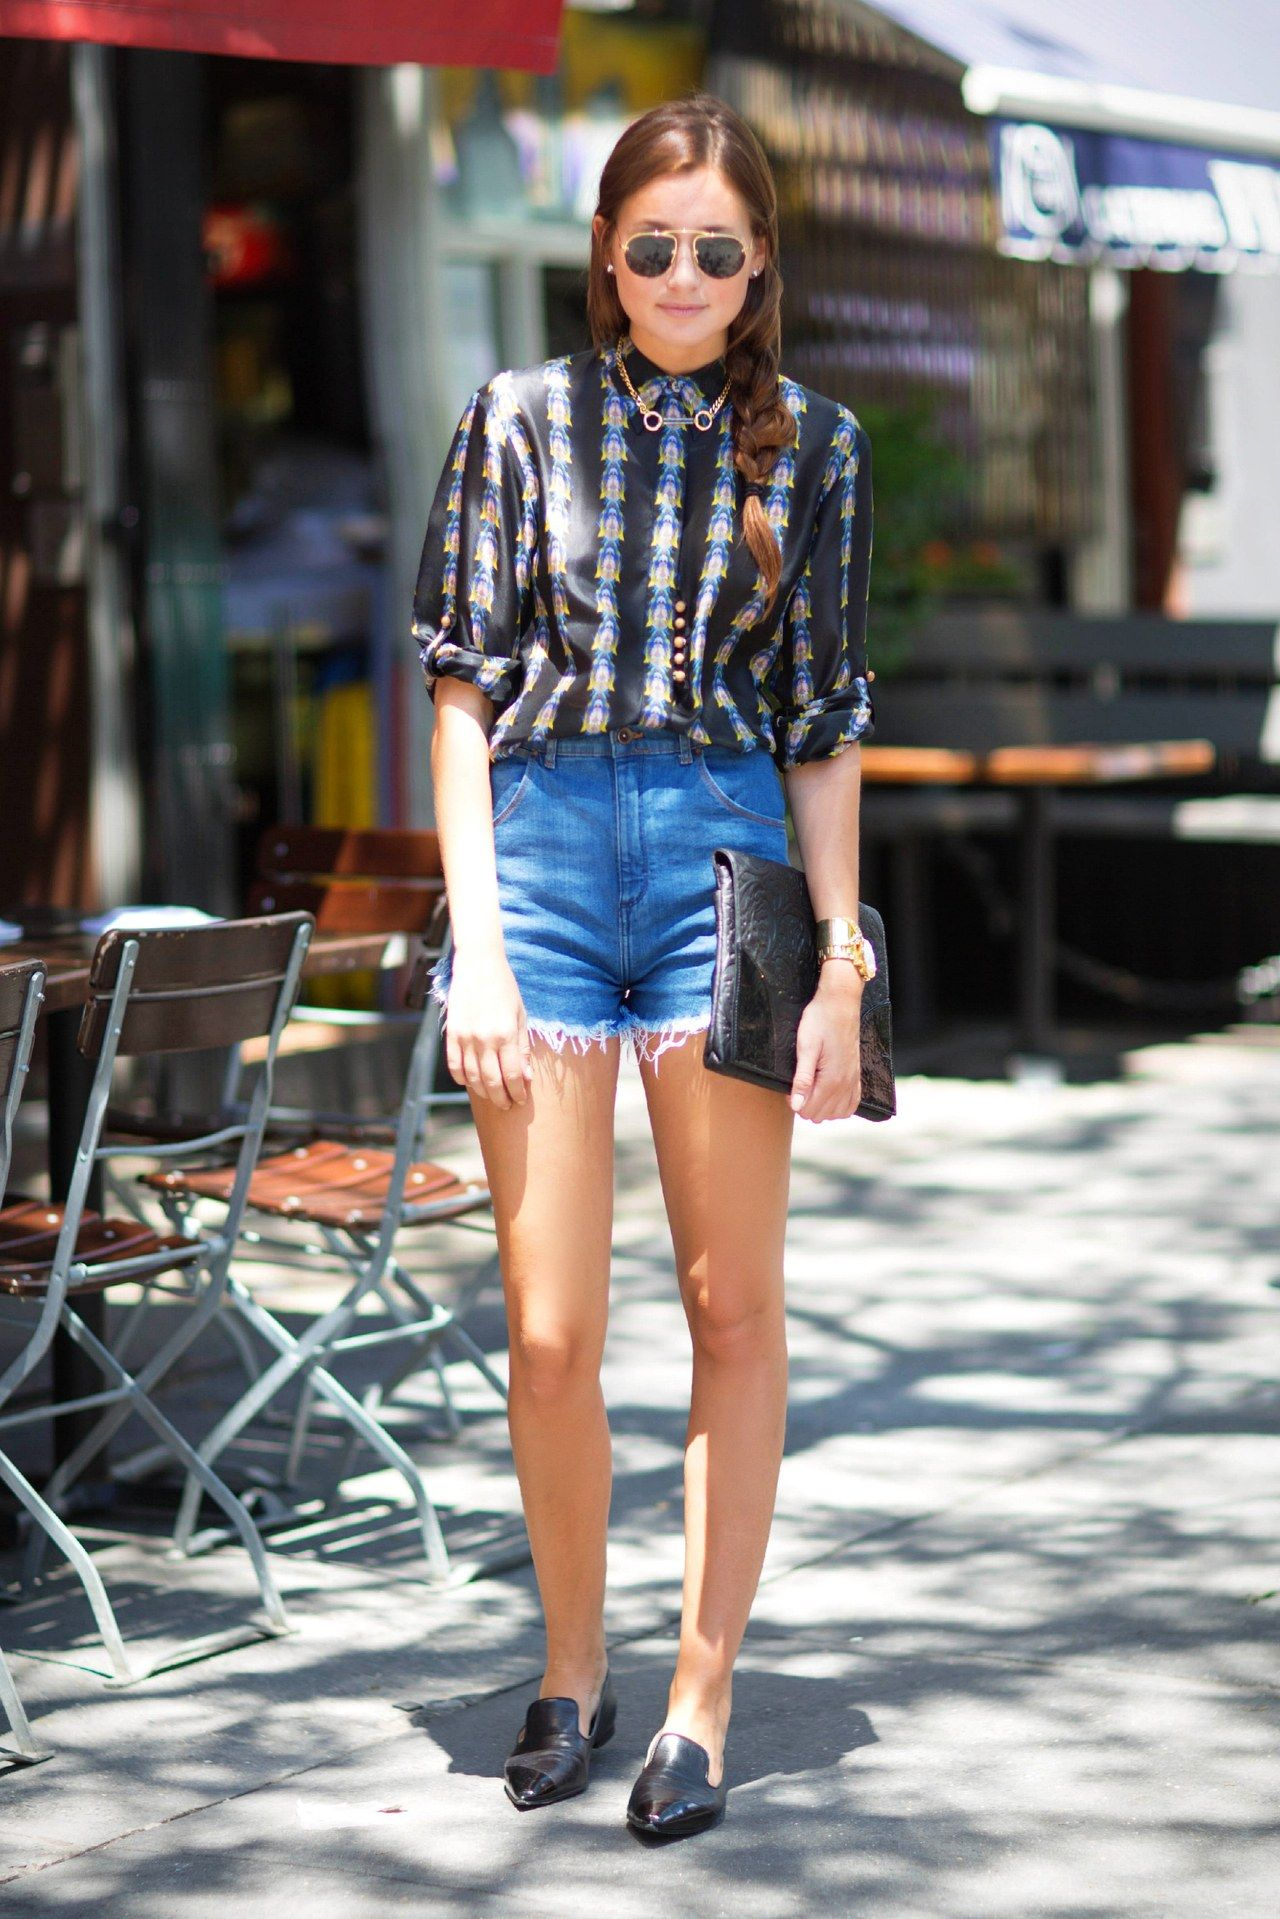 How To Dress When You Are Short And Styles Petite Women Look Amazing In